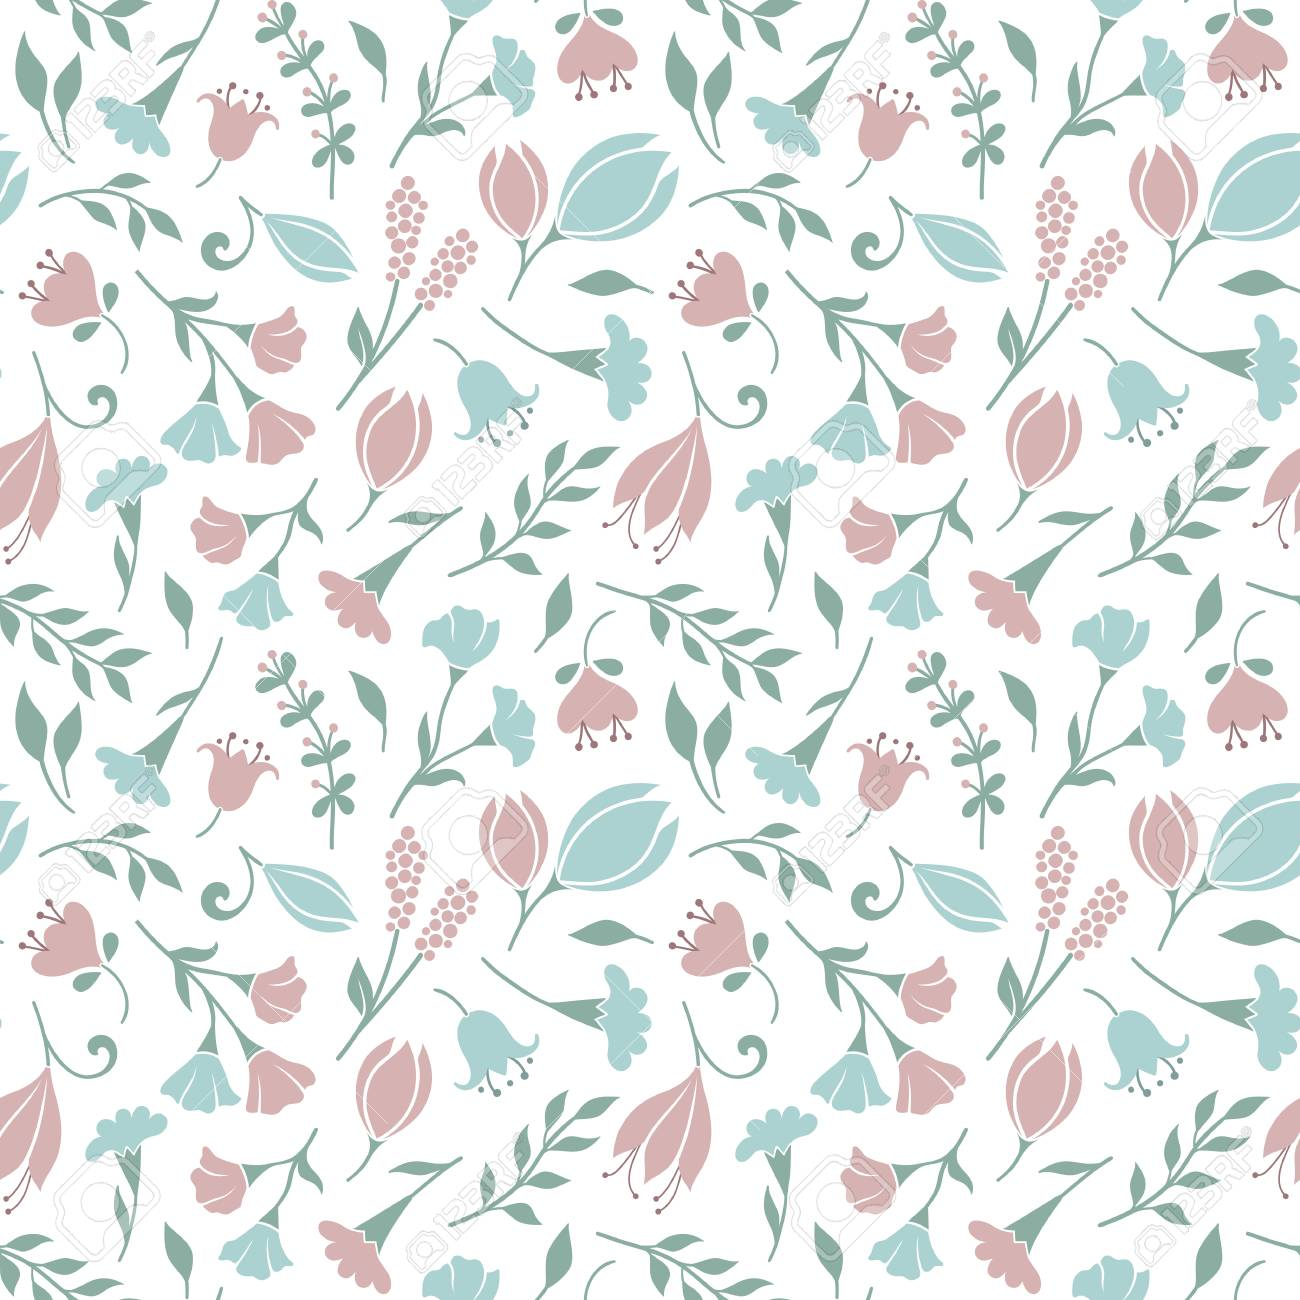 Delicate Seamless Floral Pattern Background With Cute Flowers